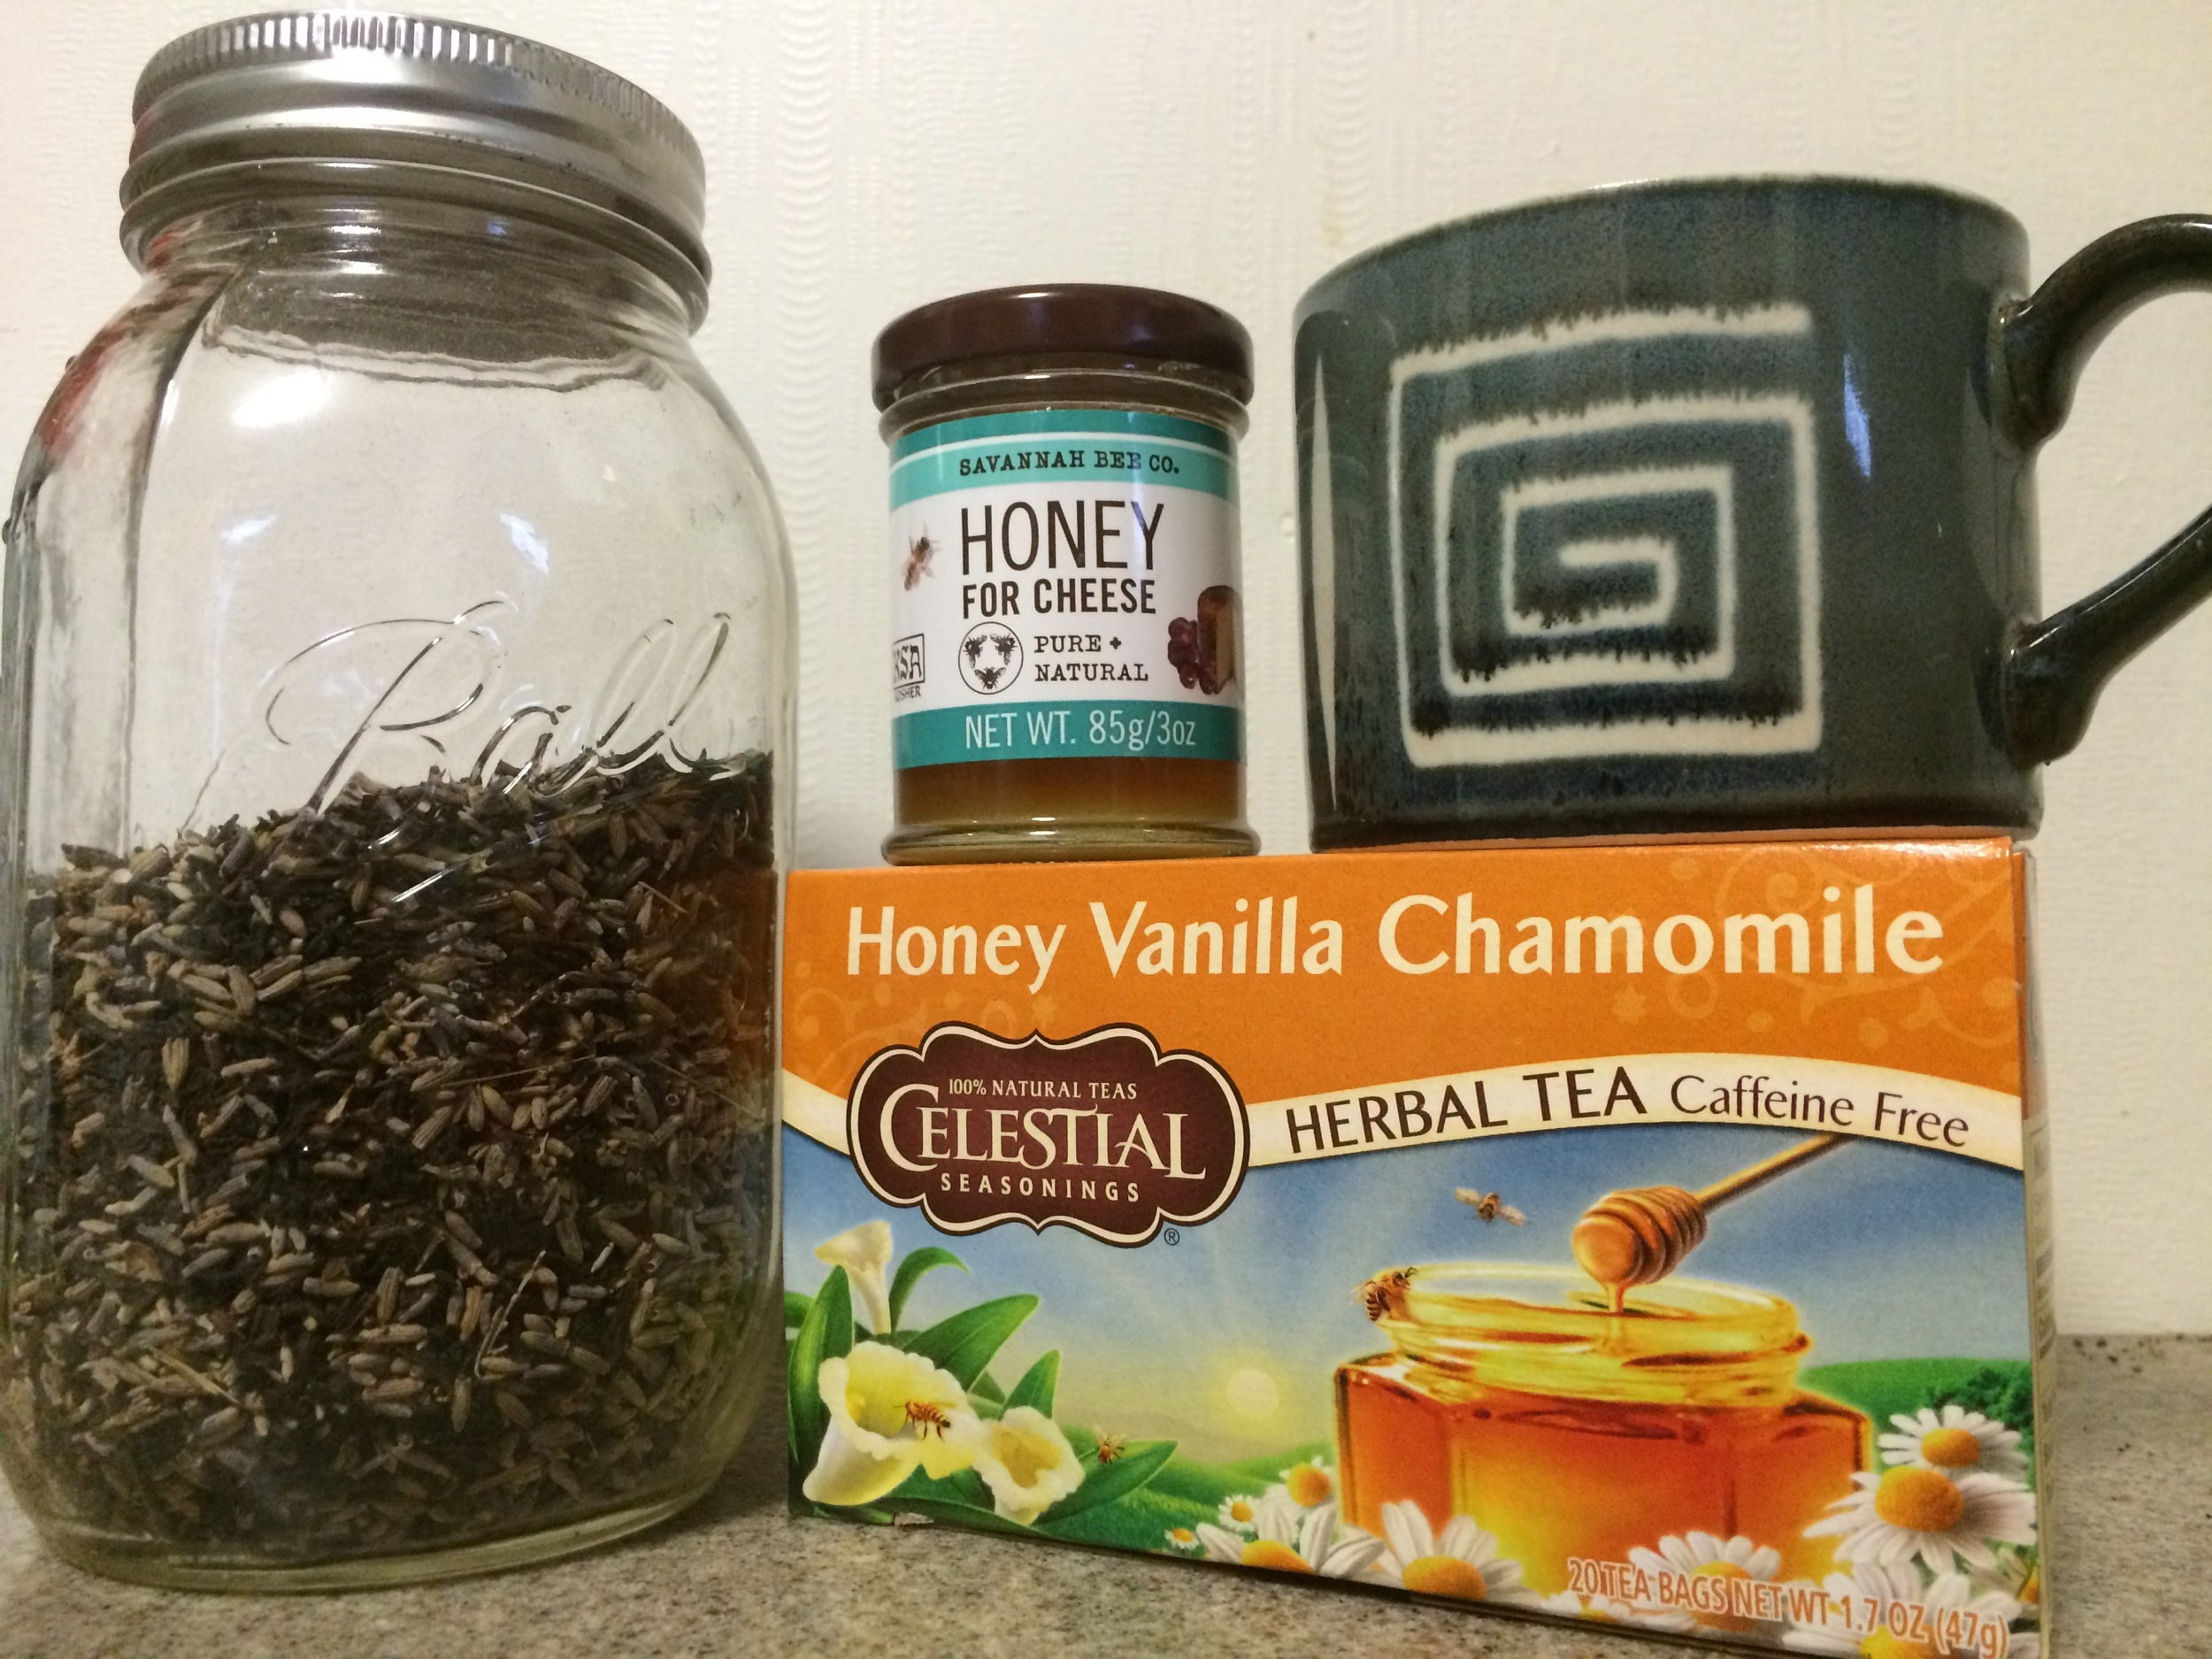 My fave blend of Twinings Earl Grey and Dried Lavender, tasty honey from the Savannah Bee Company and the deliciously calming Honey Vanilla Chamomile from Celestial Seasonings.